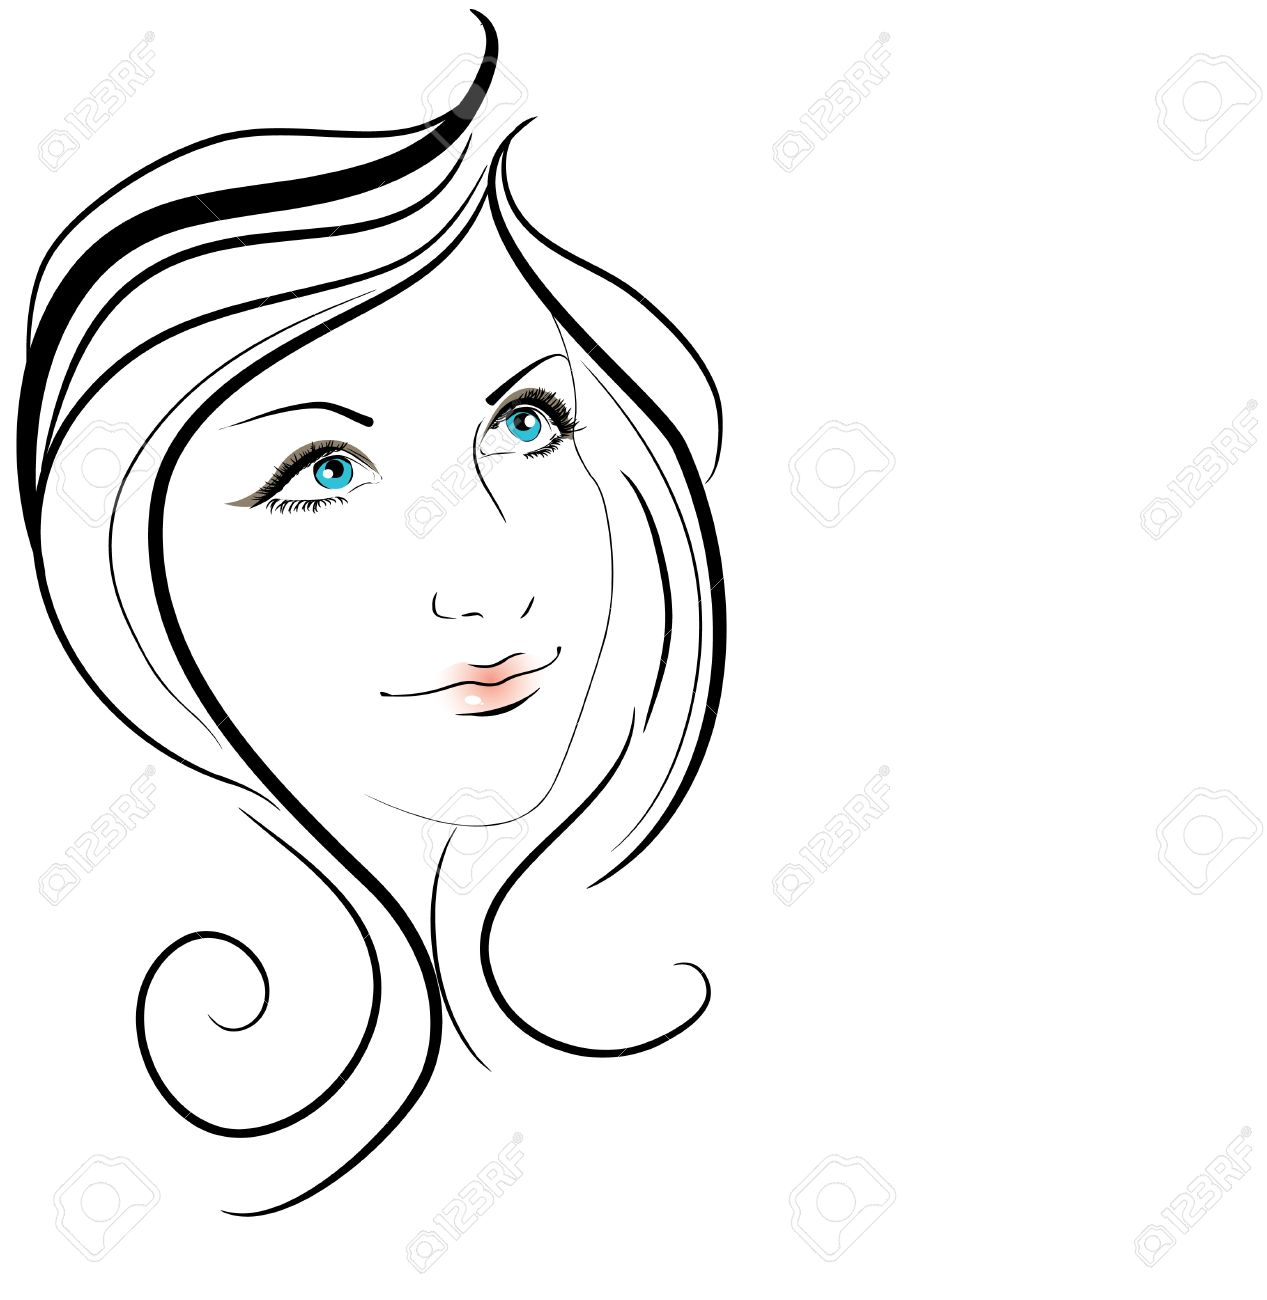 5450 Beauty free clipart.